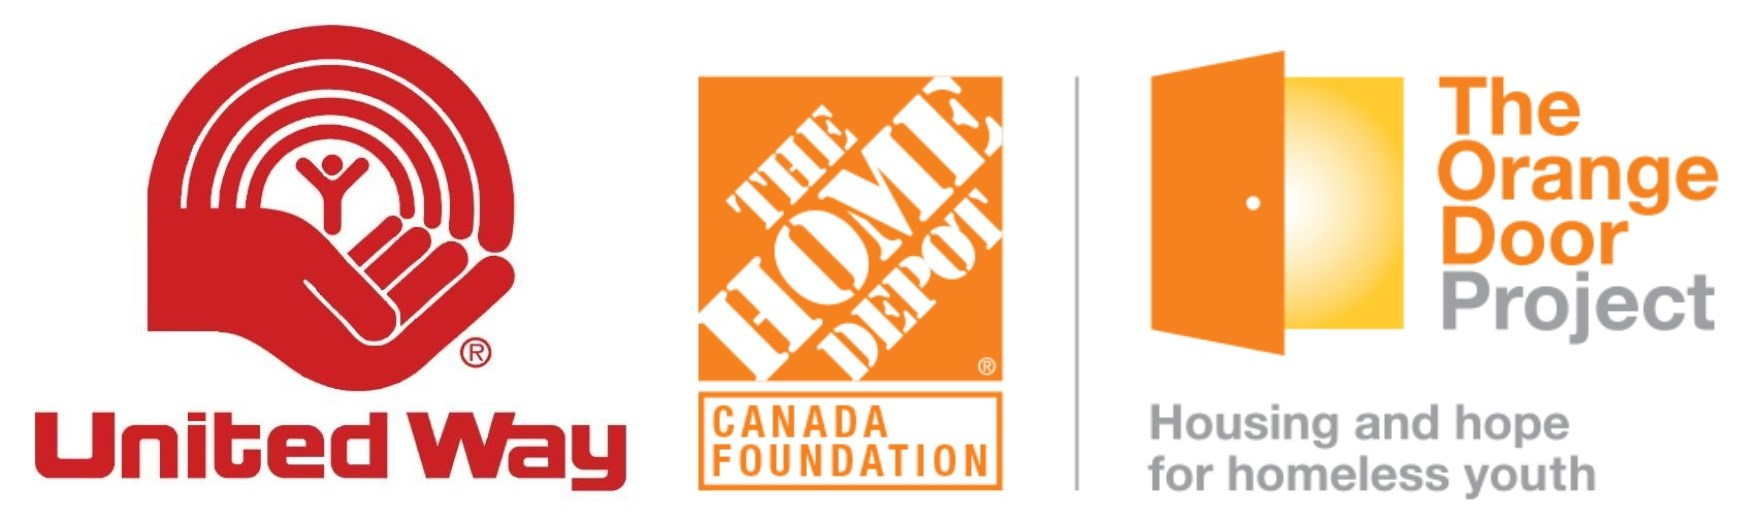 United way logo and Link, and Home Depot Logo